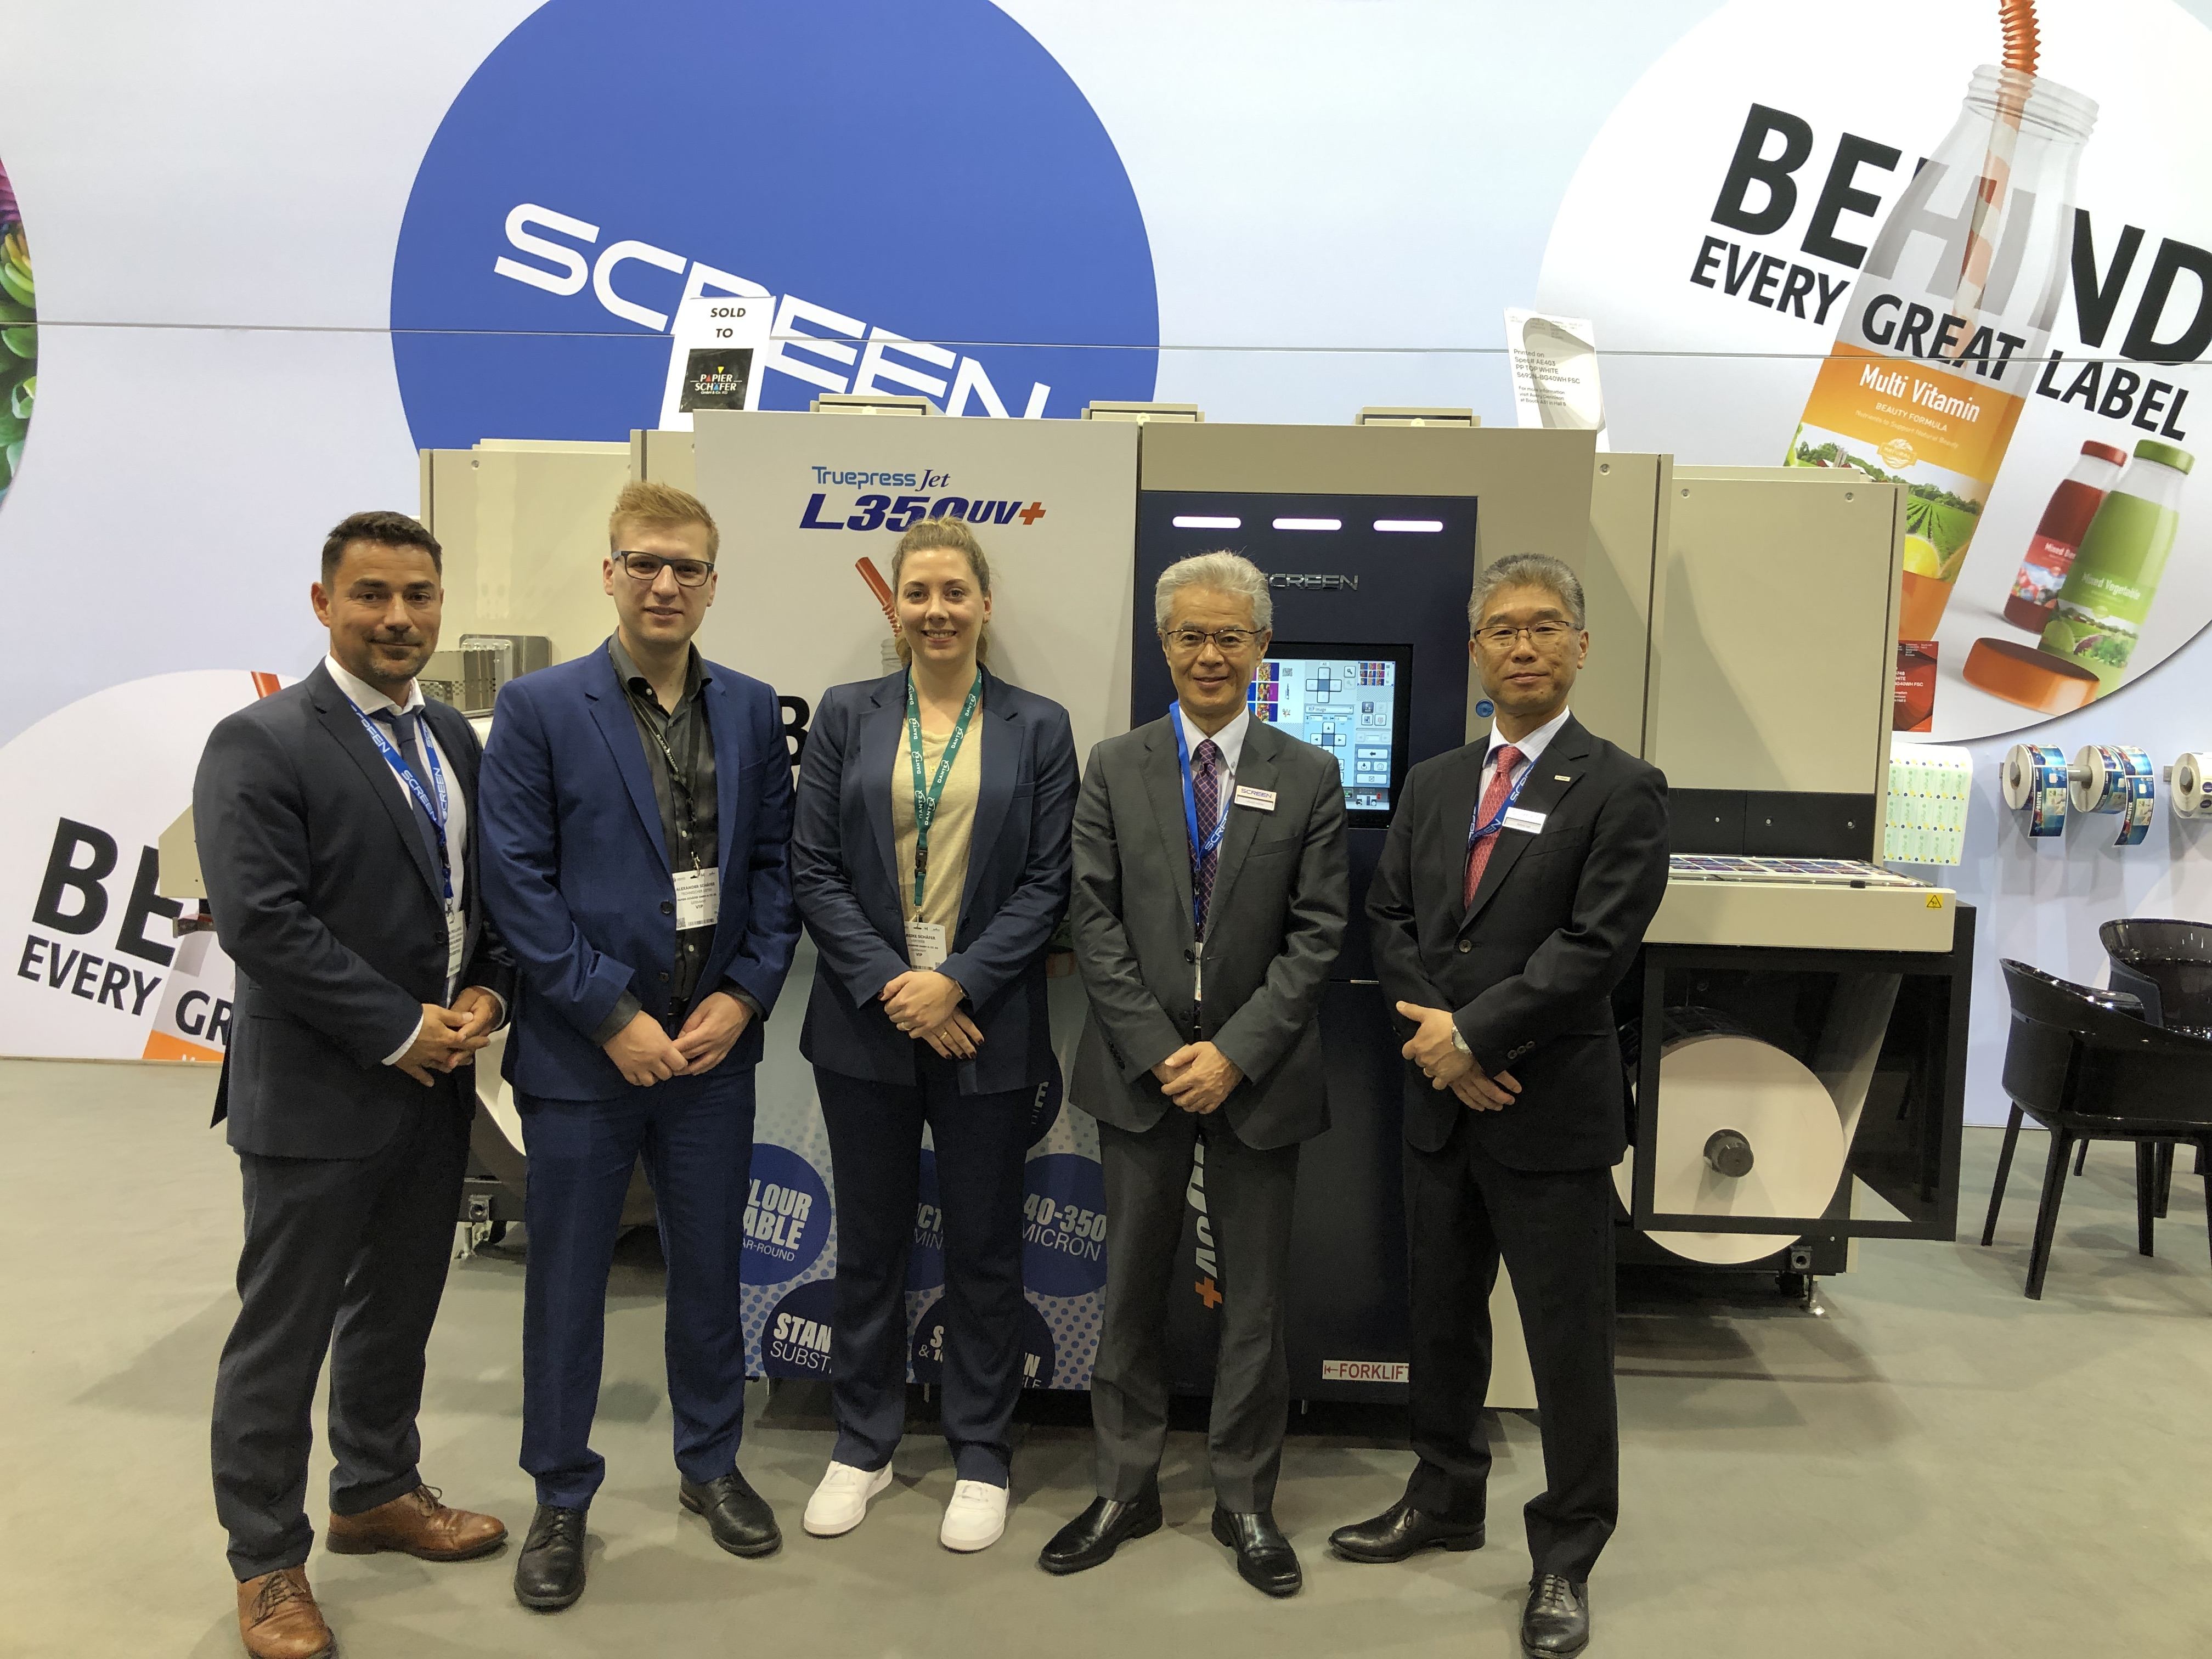 Image from PAPIER-SCHÄFER GMBH SIGNS FOR FIRST GERMAN SCREEN TRUEPRESS JET L350UV+LM AT LABELEXPO 2019